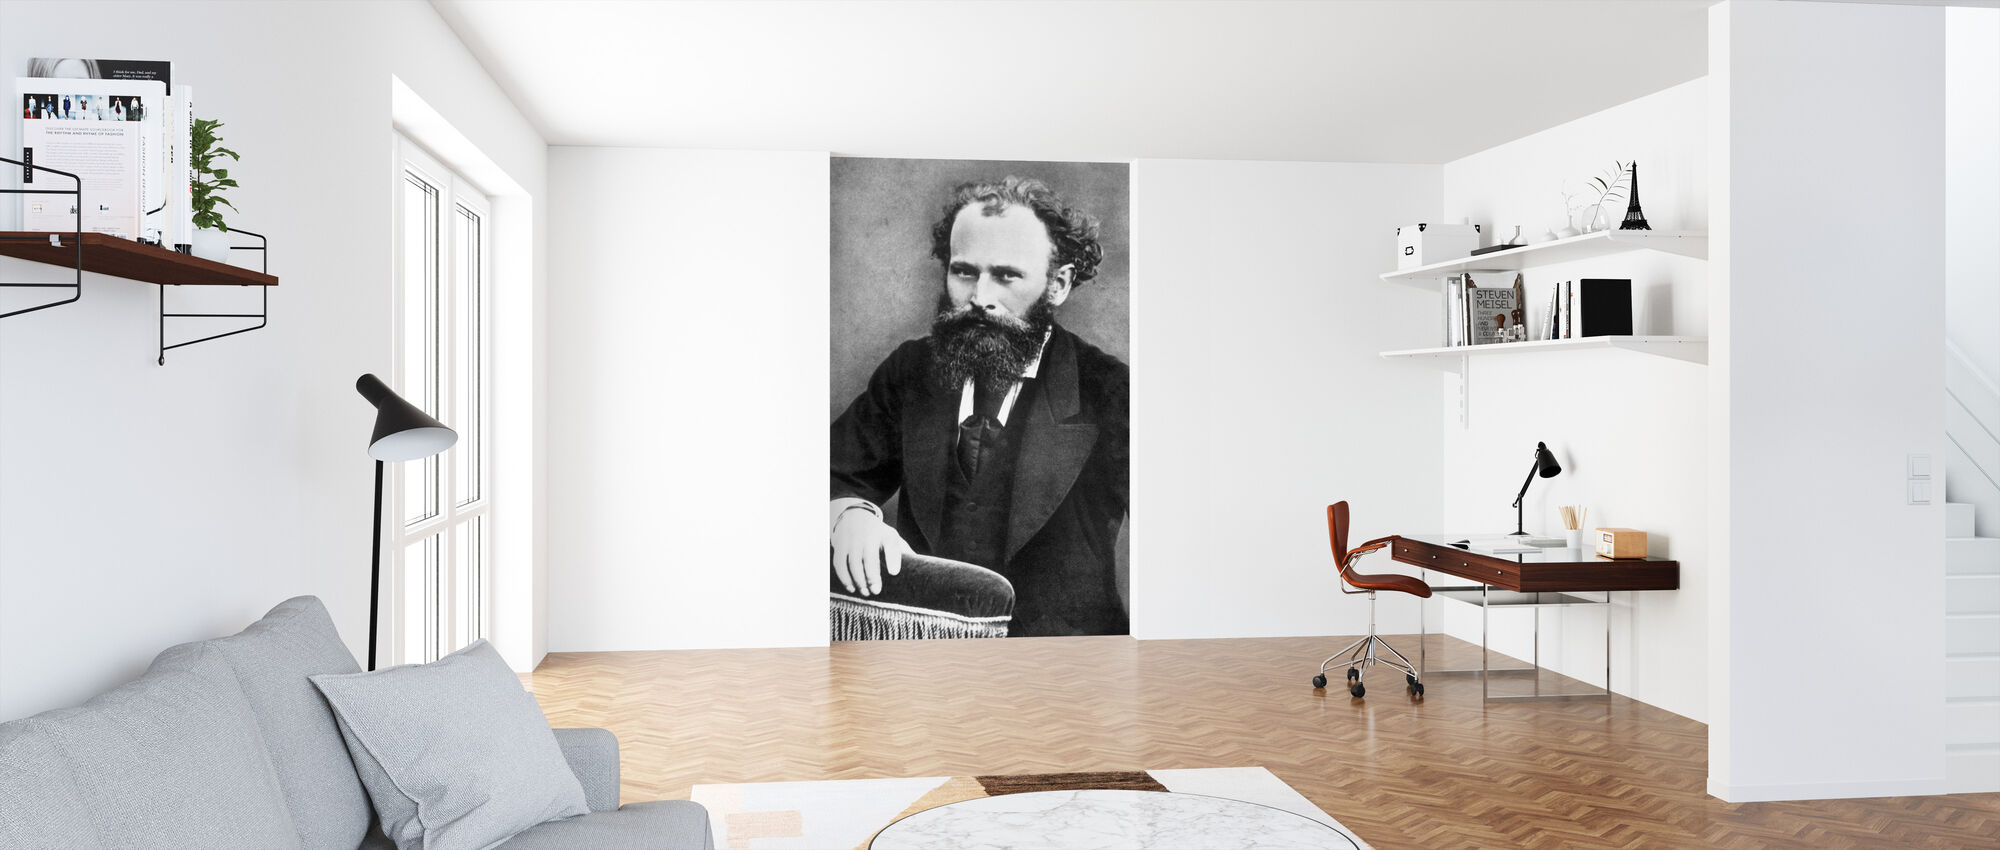 Edward Manet - Wallpaper - Office